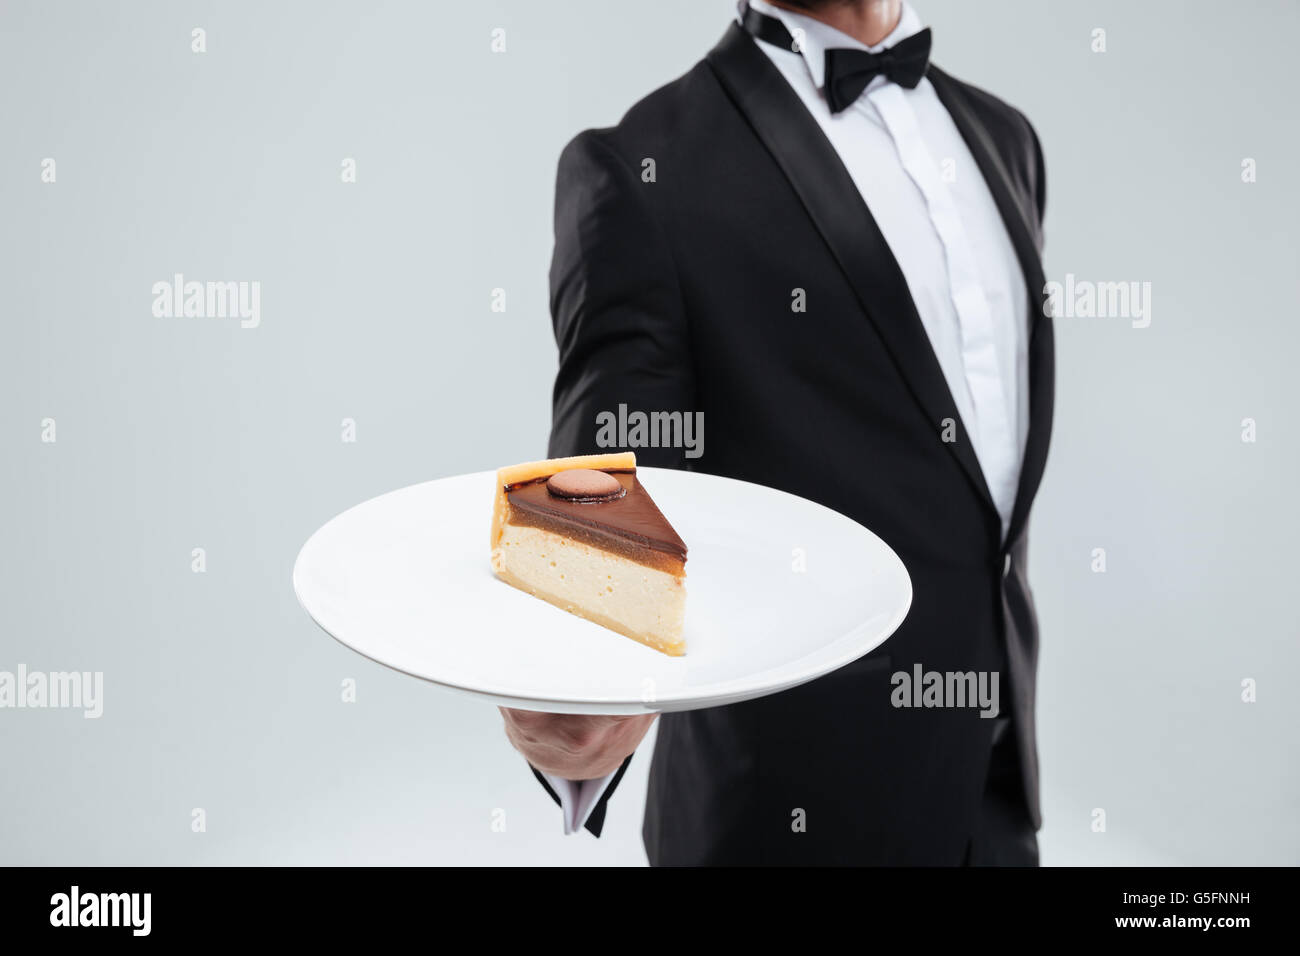 Waiter in tuxedo with bowtie holding plate with piece of